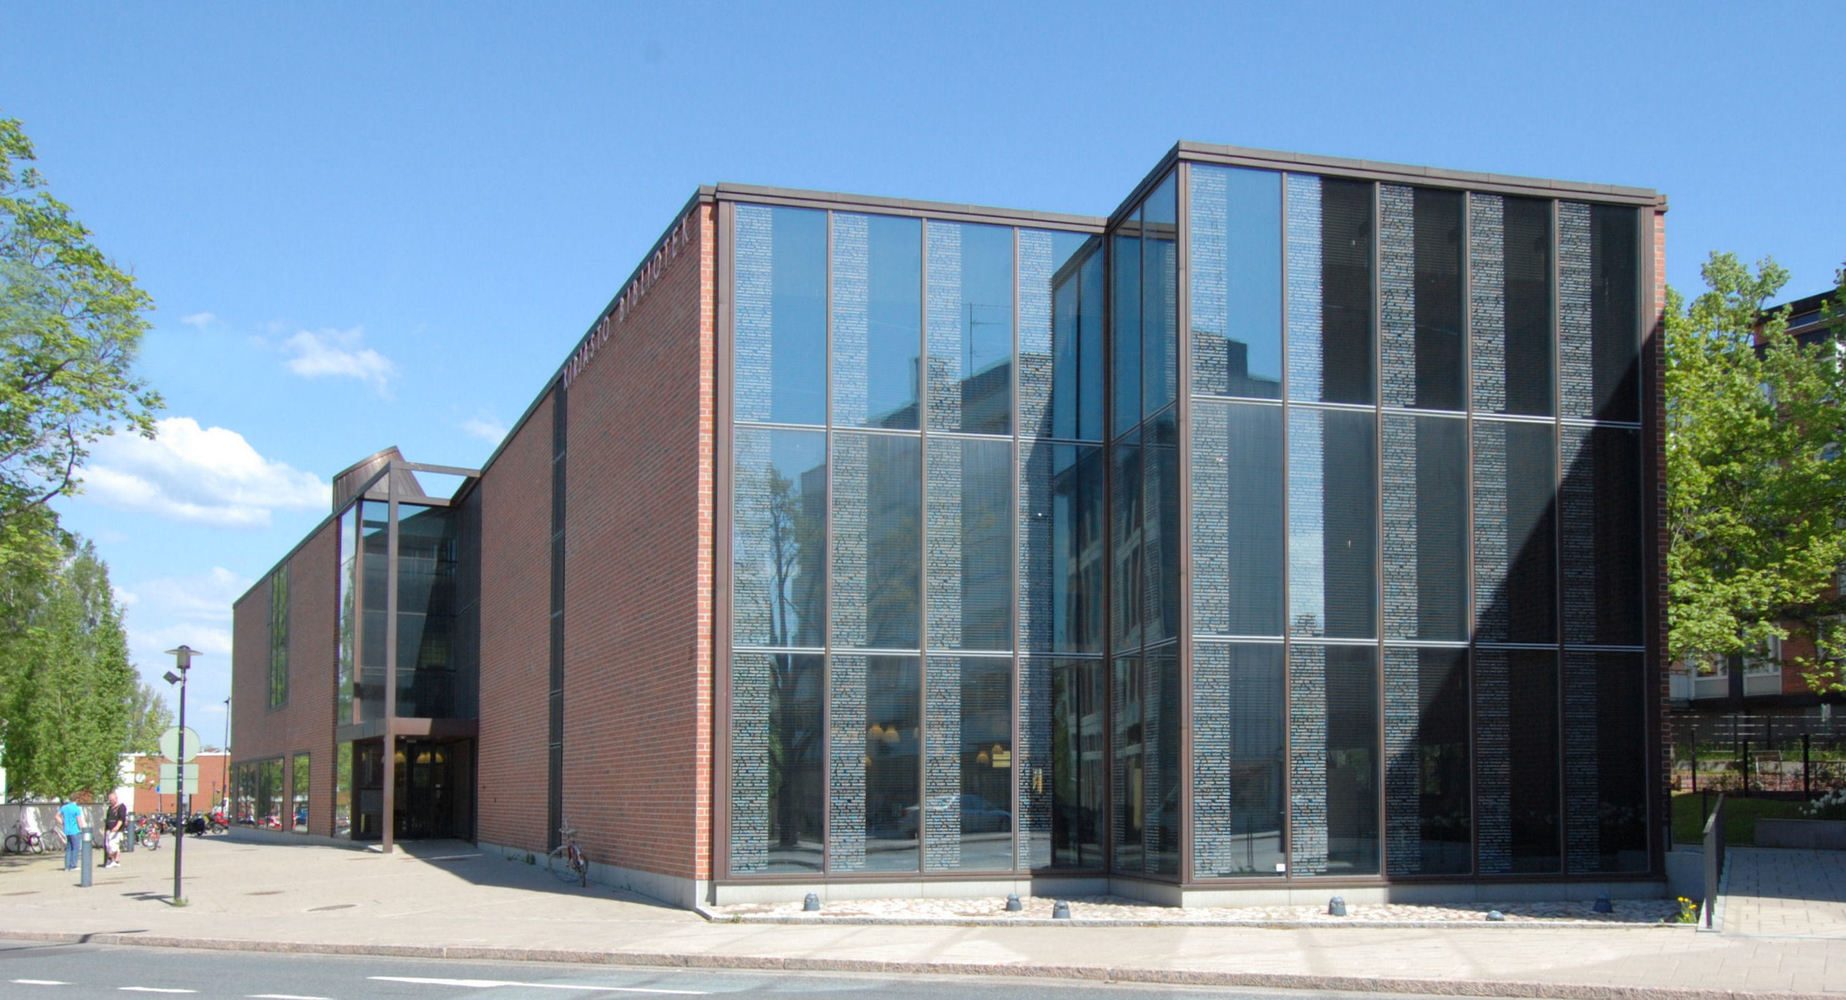 Lohja, main library